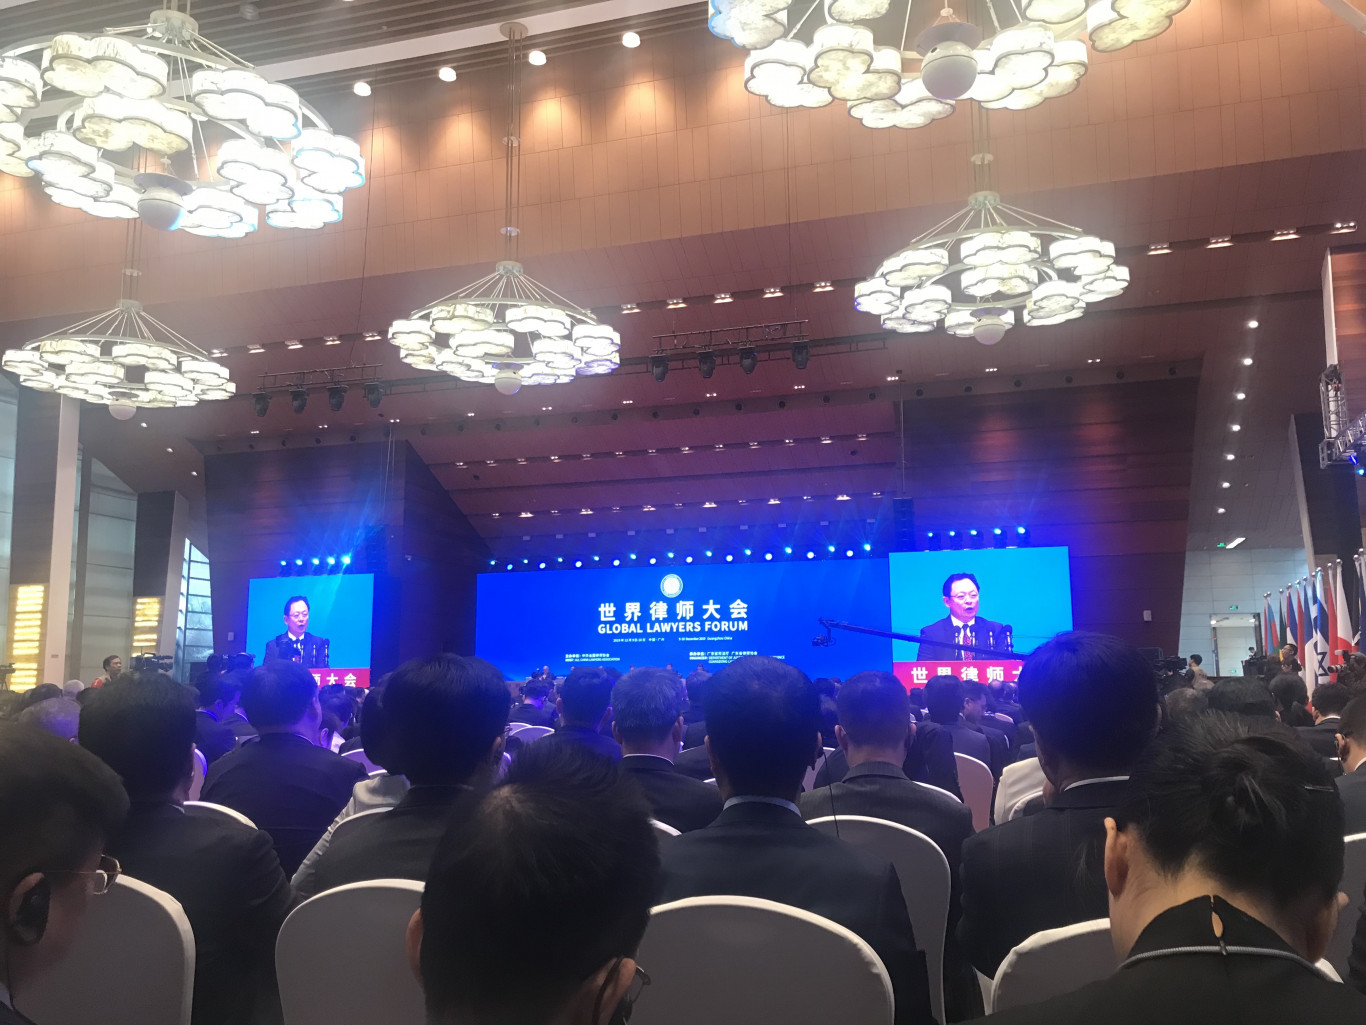 The GlF was held for two days in Guangzhou.